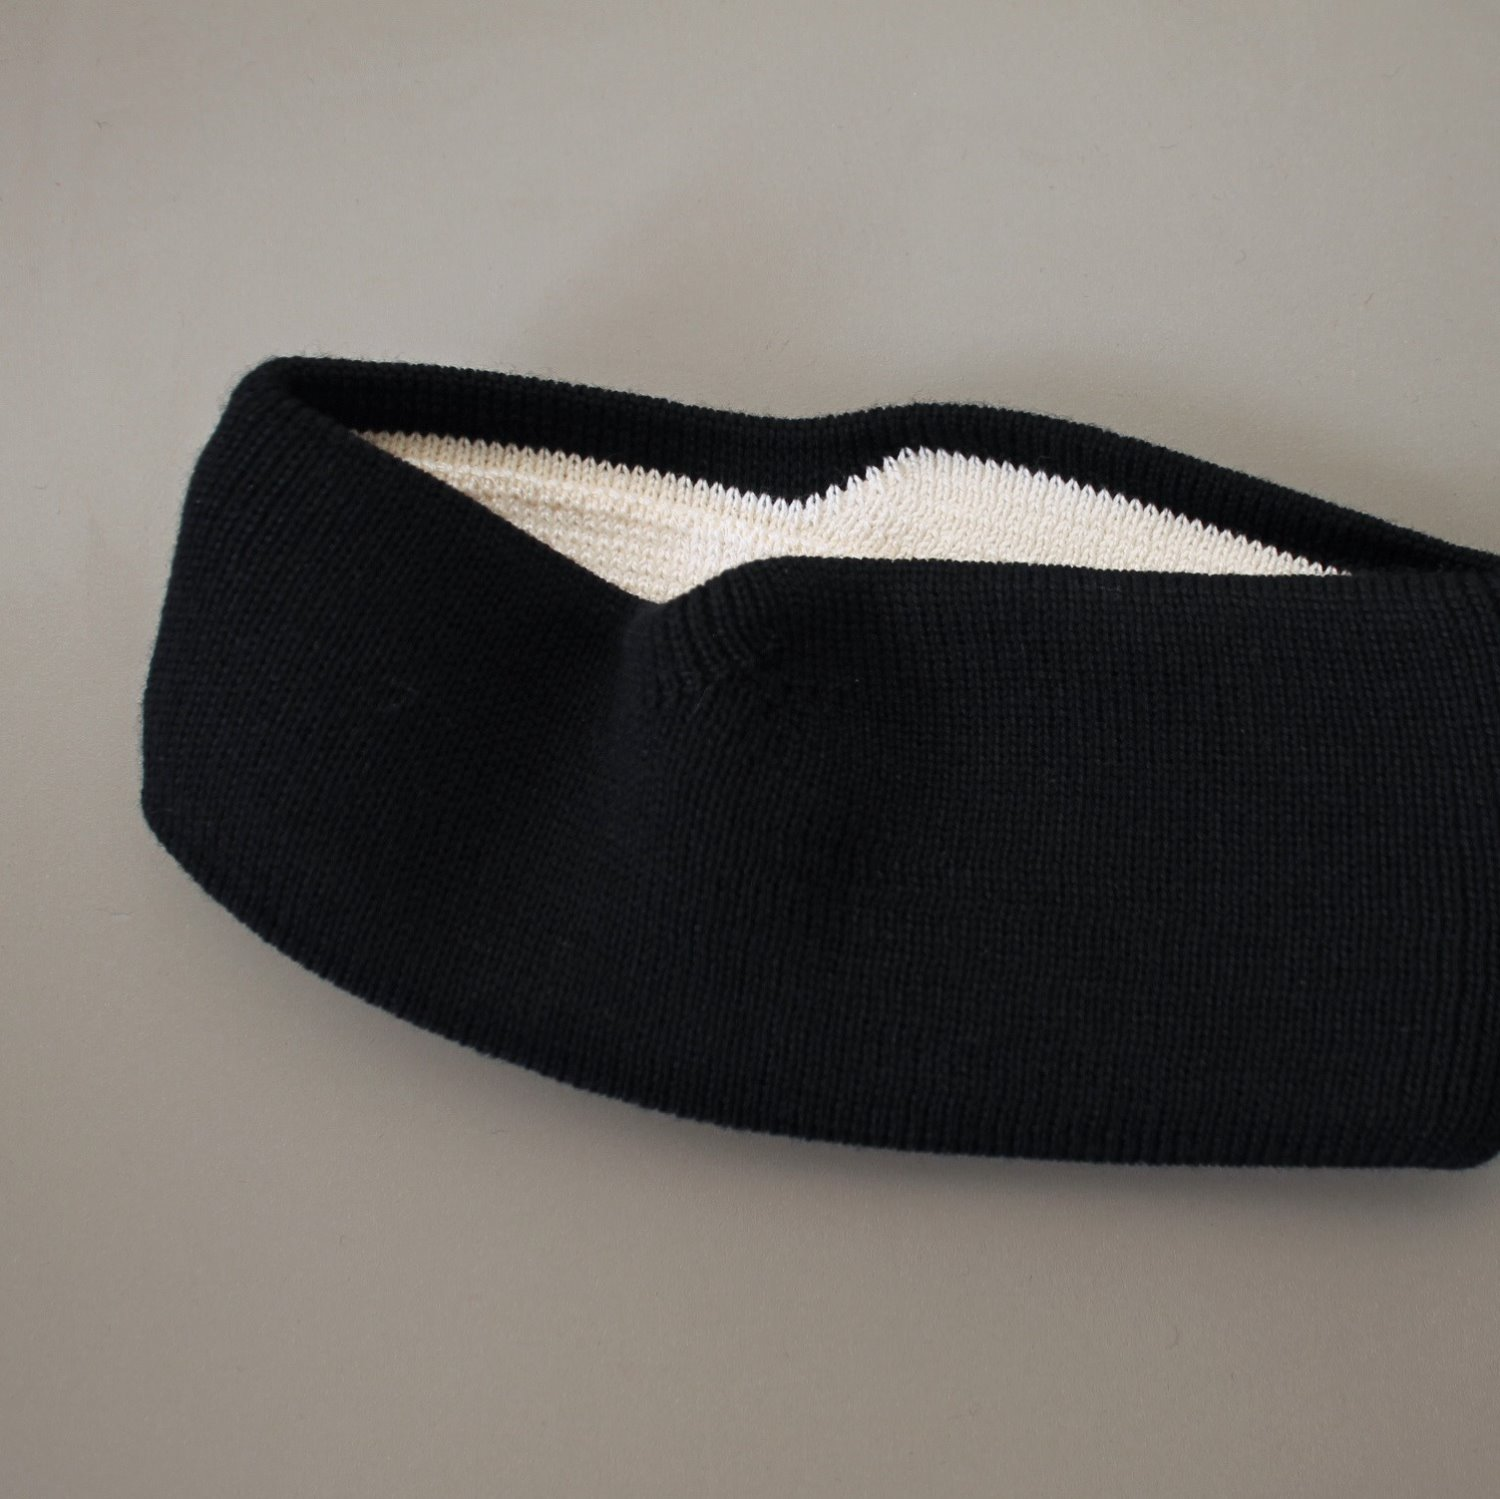 [LEUCHTFEUER STRICKWAREN] Head Band - Black